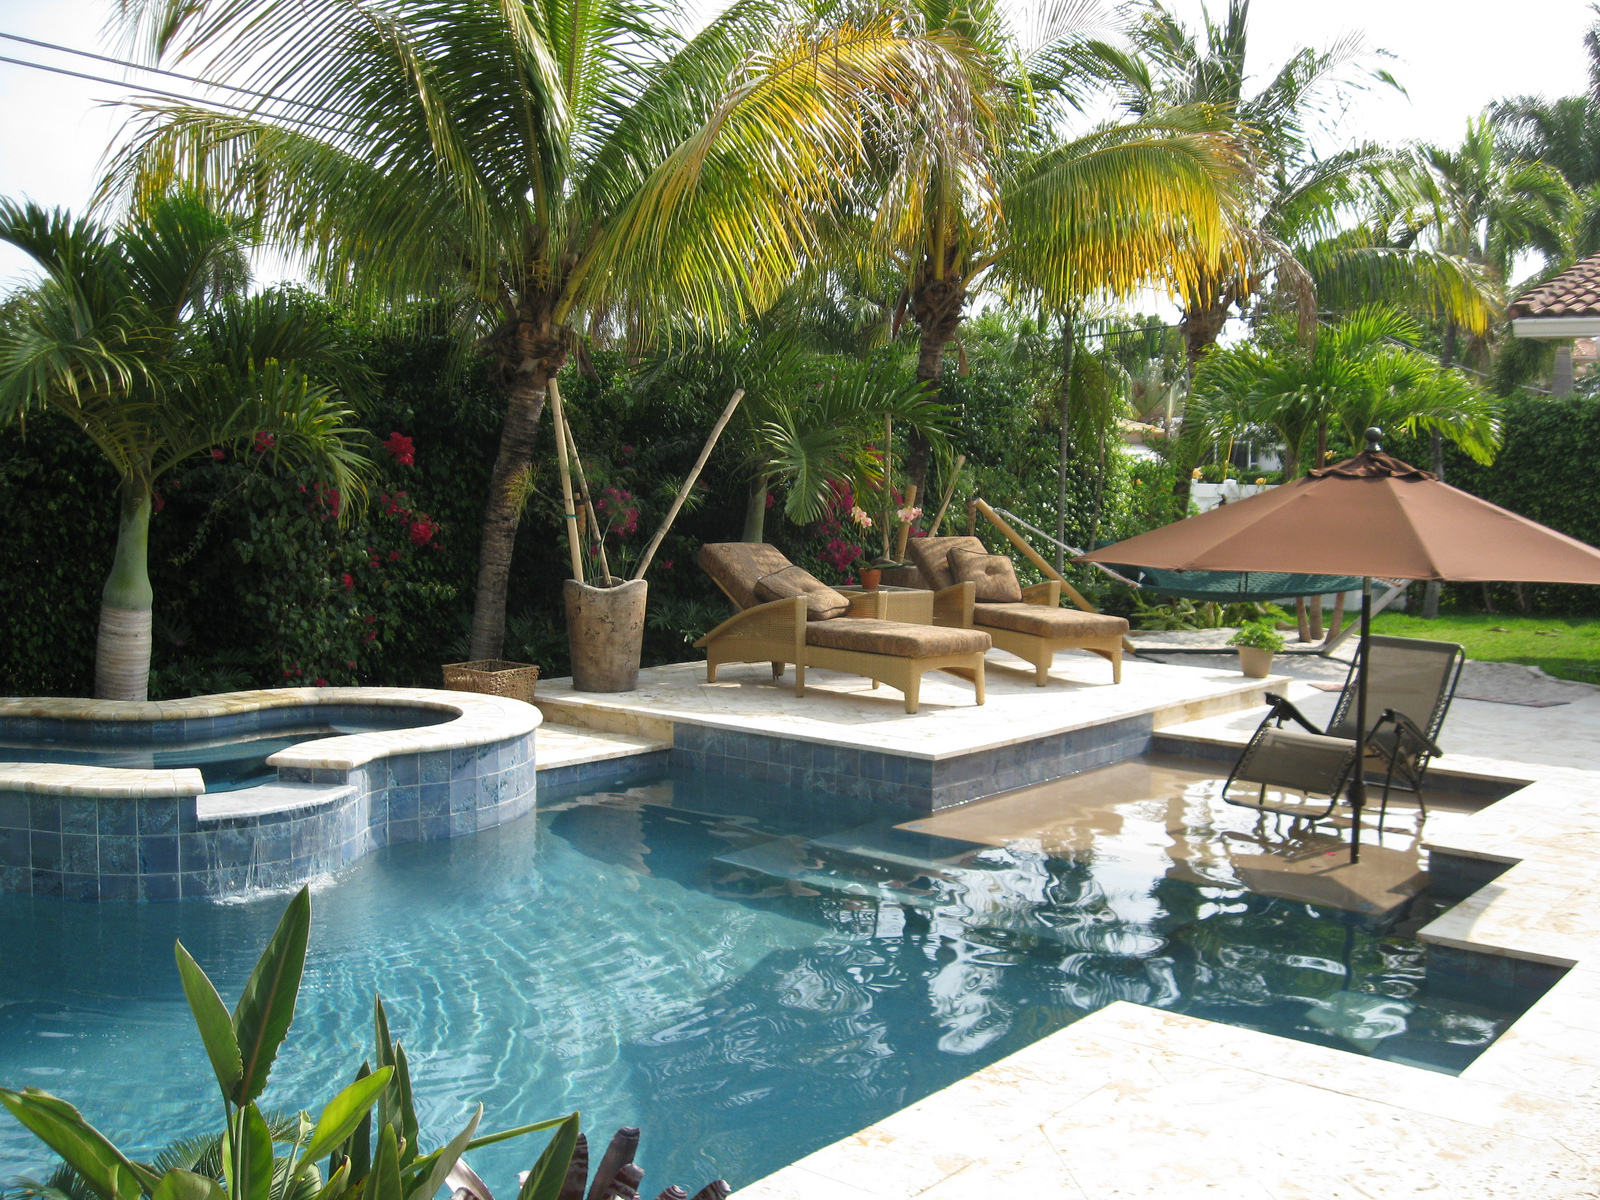 Hallandale Beach Pool Service and Maintenance